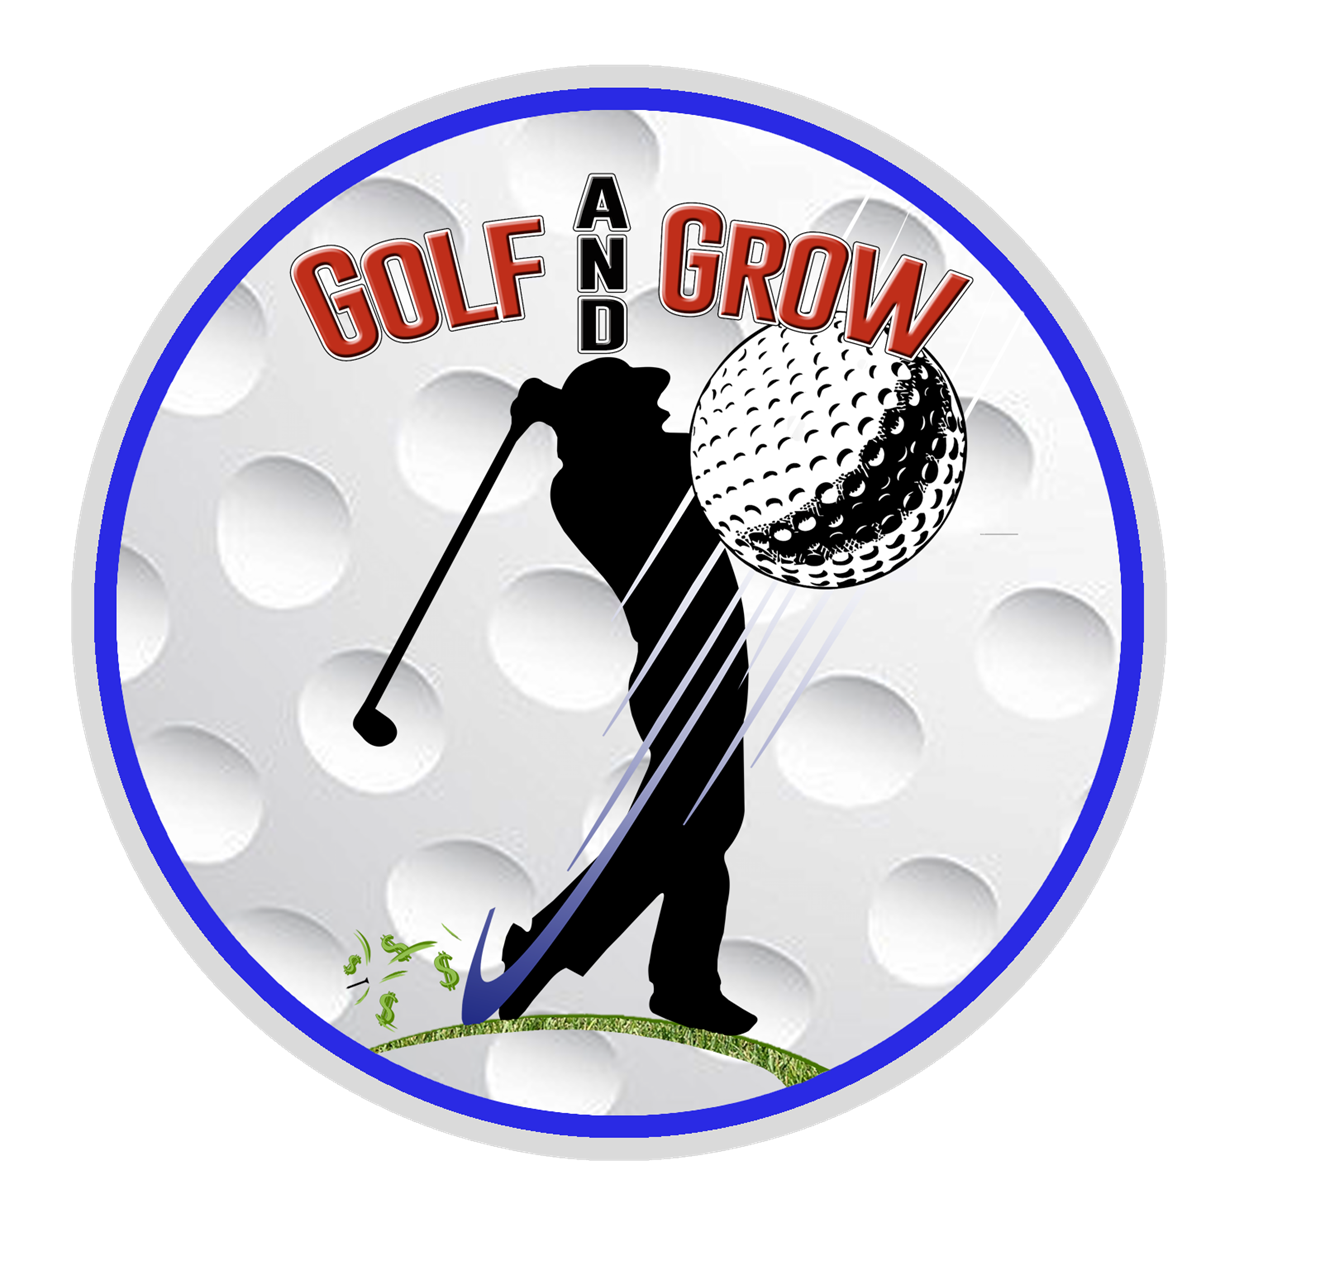 Golf and Grow is the best country club for the modern golfer who wants to play world class golf